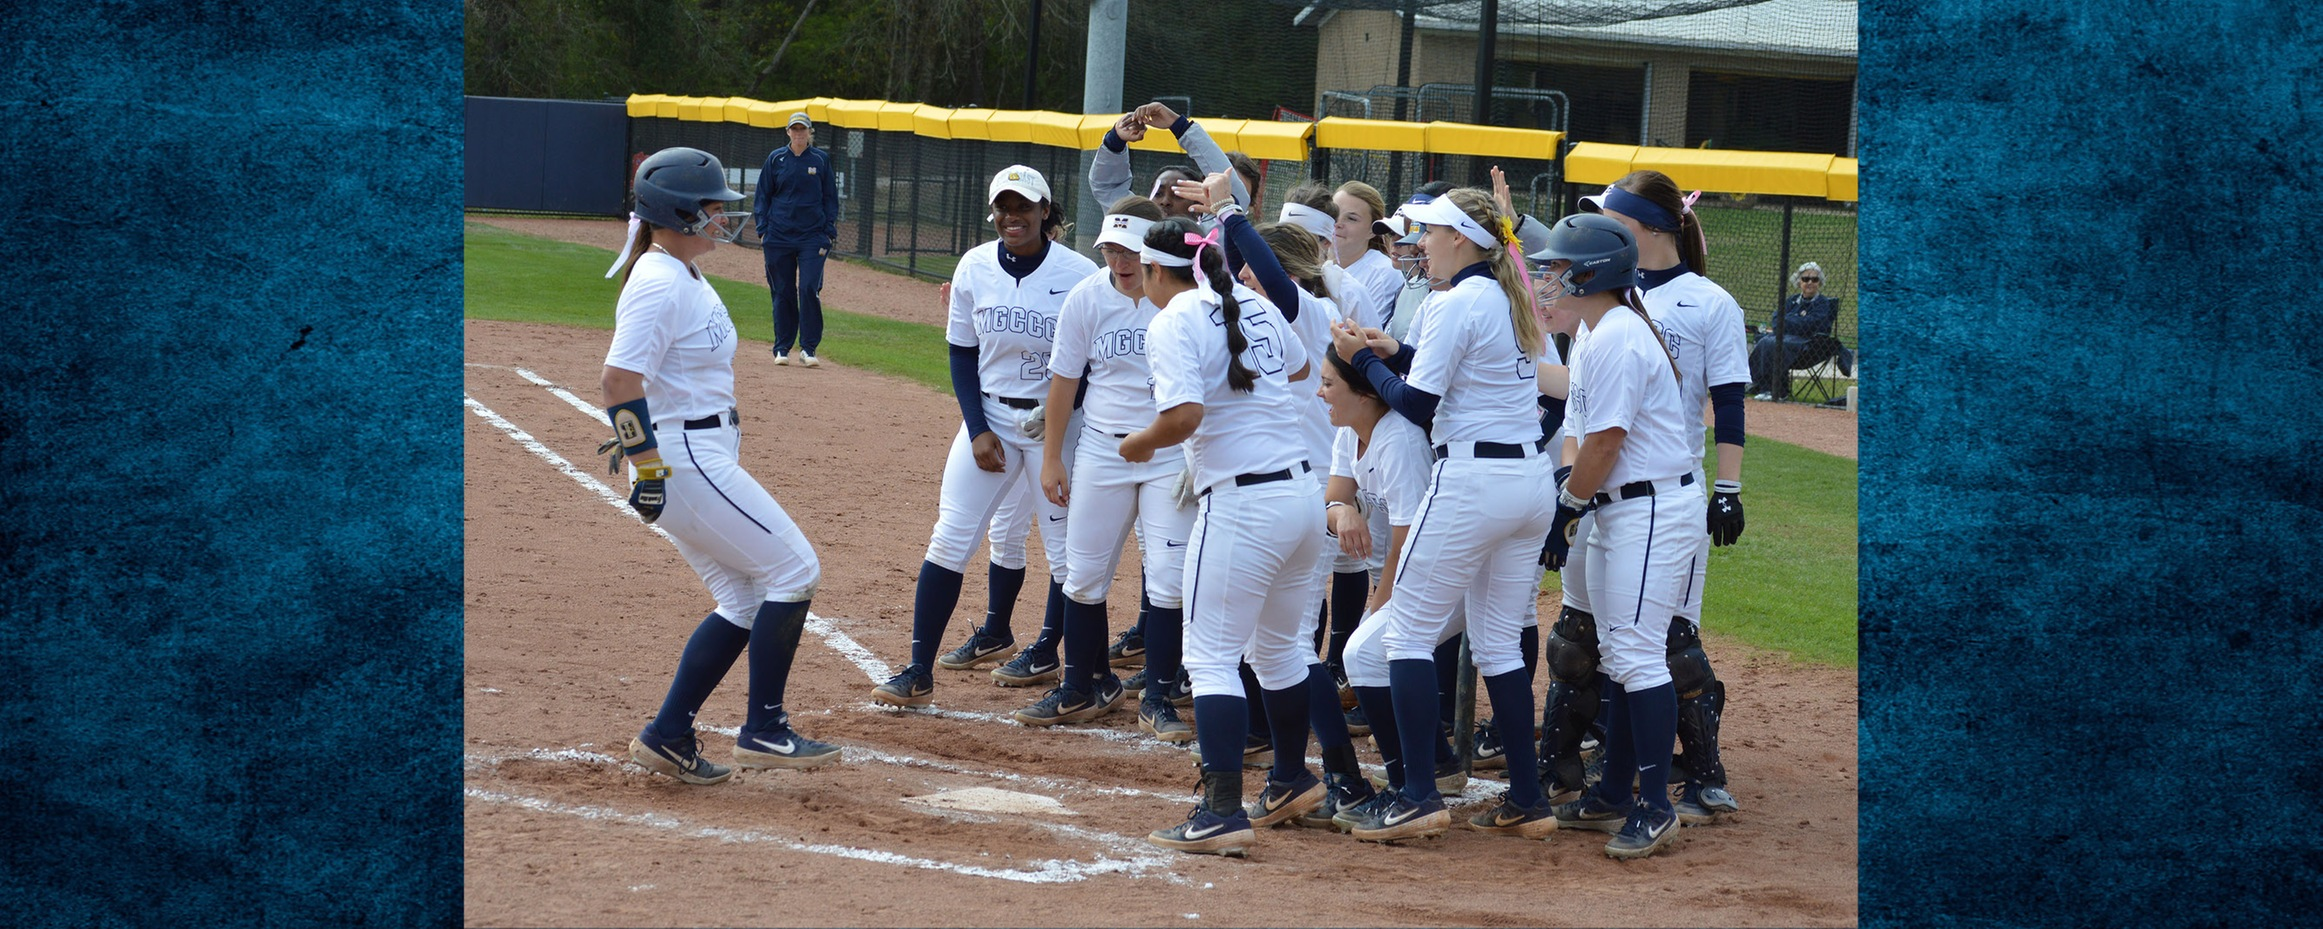 No. 8 MGCCC faces No. 1 JC